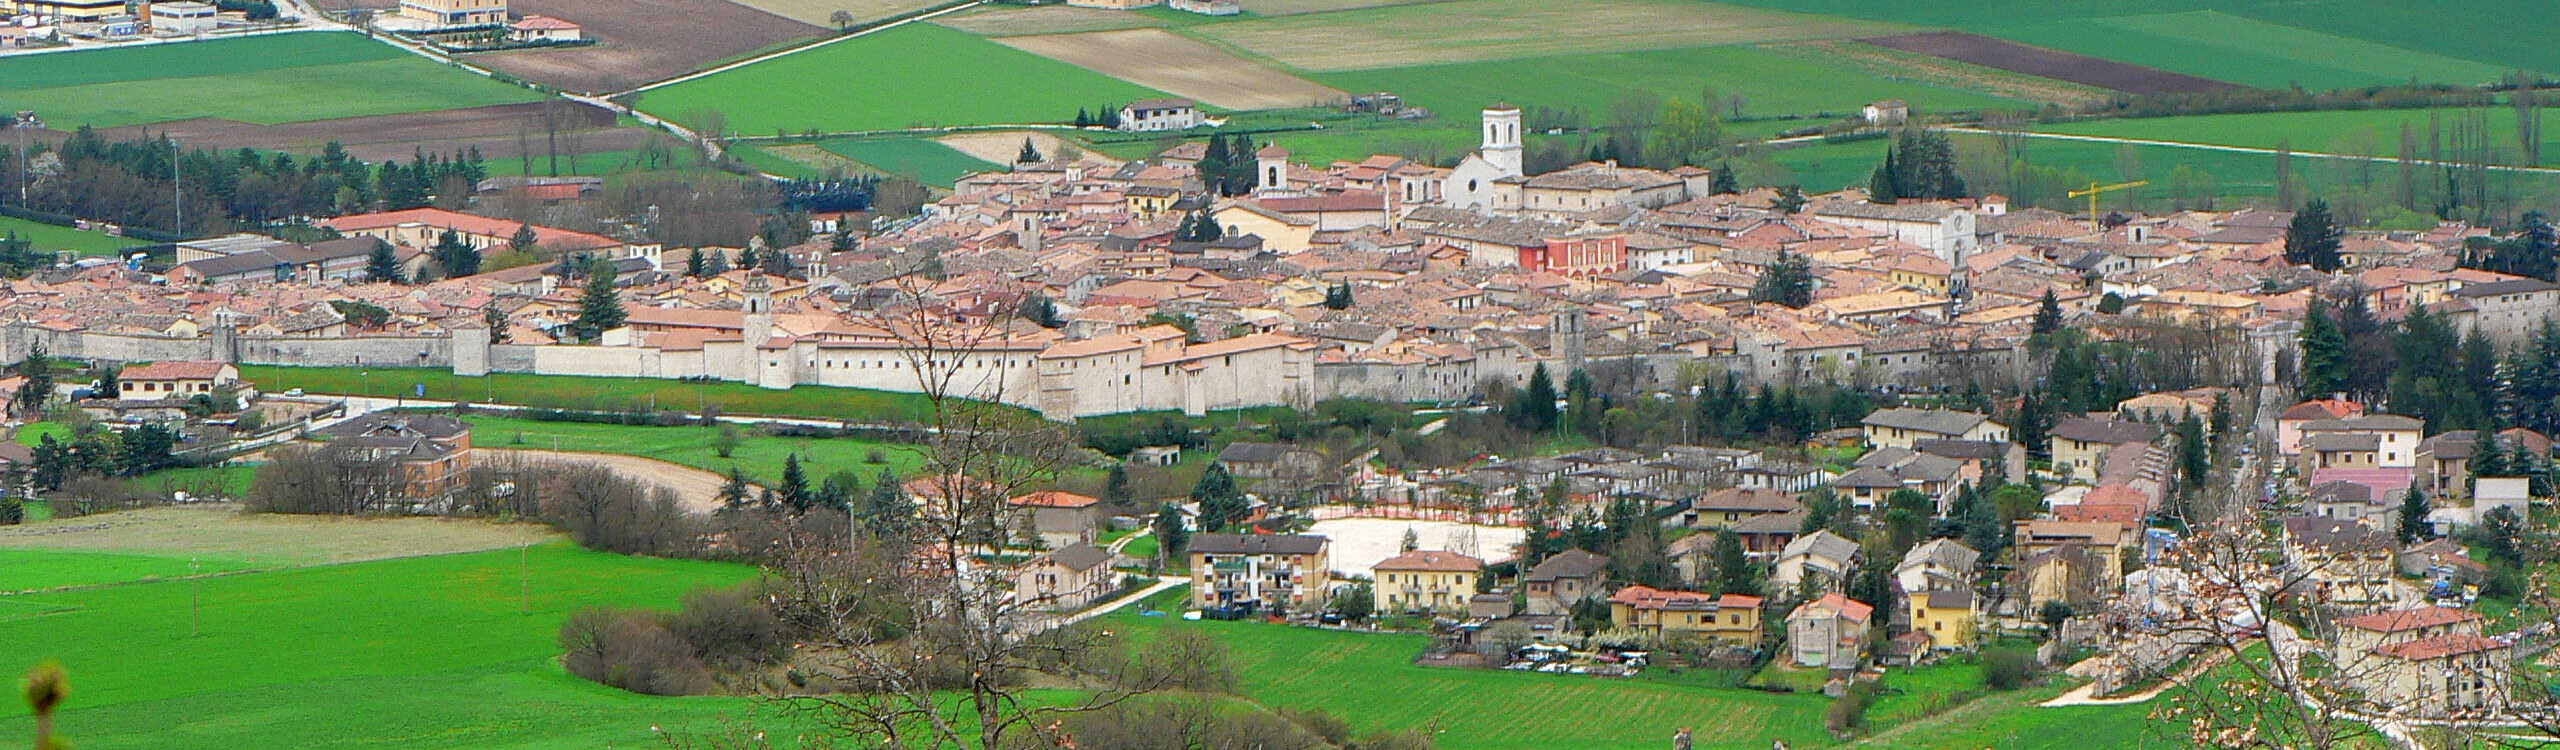 Umbria Sightseeing Italy Travel Guide Central Italy Vacations